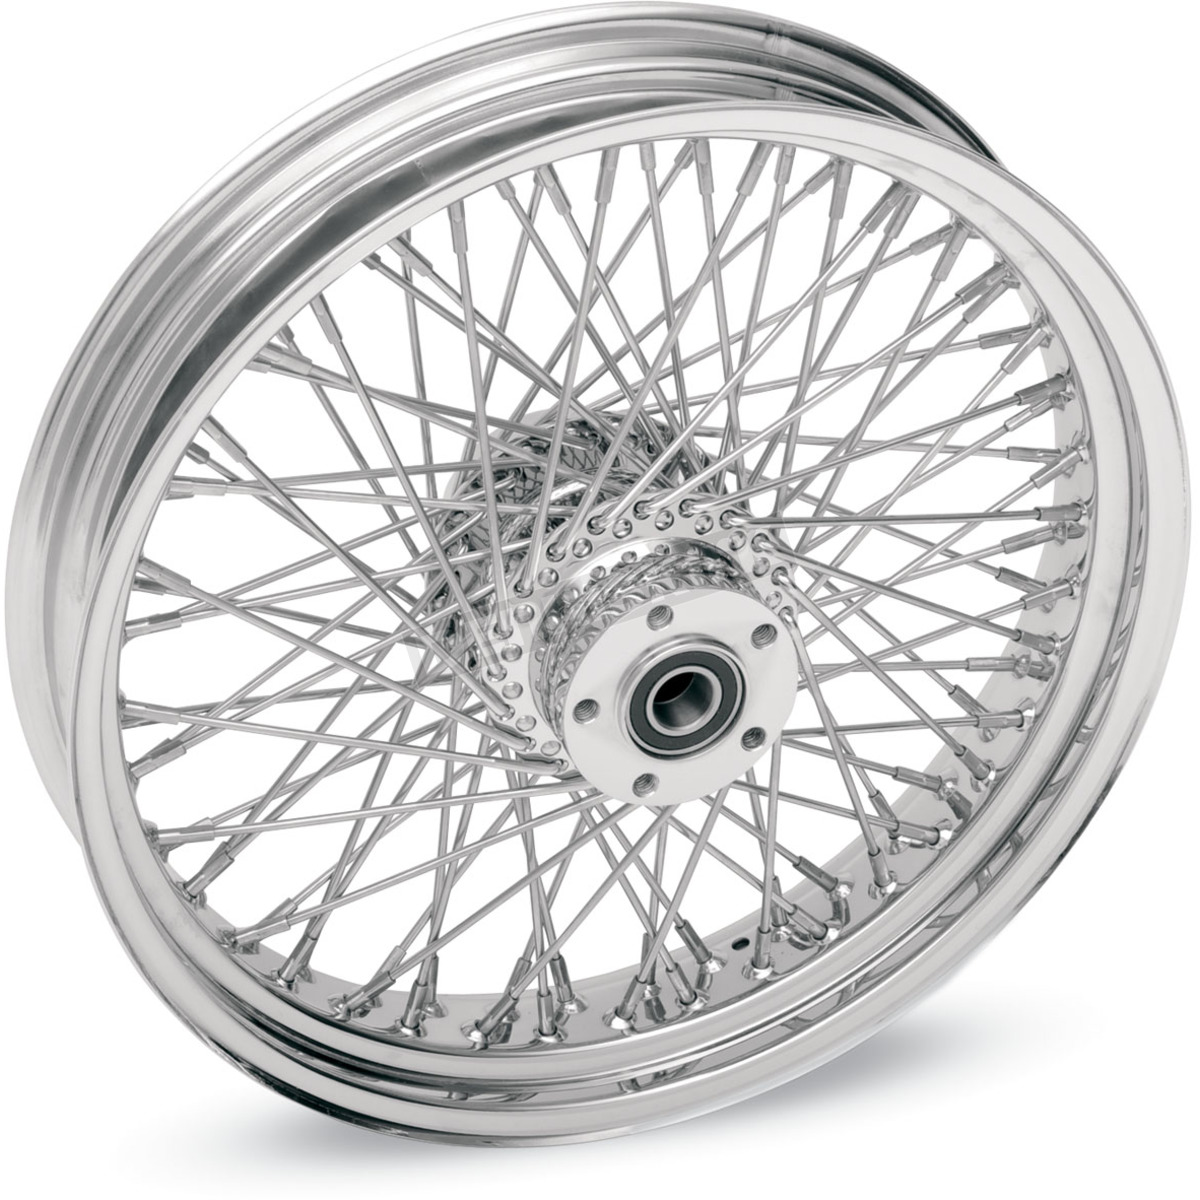 Drag Specialties Chrome Rear 17 x 6 80-Spoke Laced Wheel Assembly ...